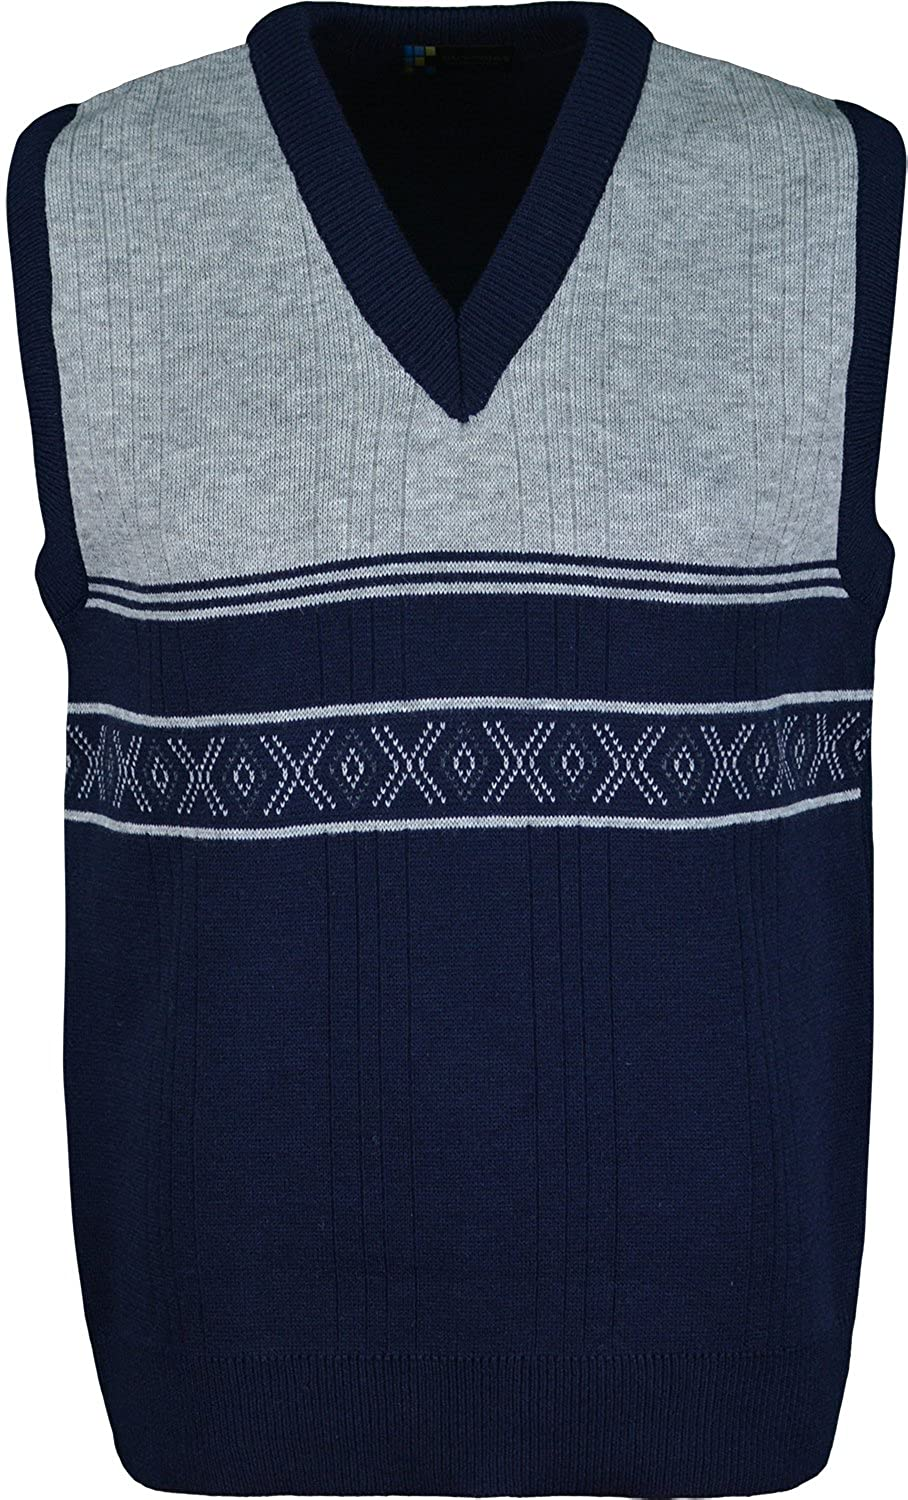 Mens Sleeveless Cardigan Knitted Waistcoat Classic Style Cardigans V Neck Sweater With Front Design